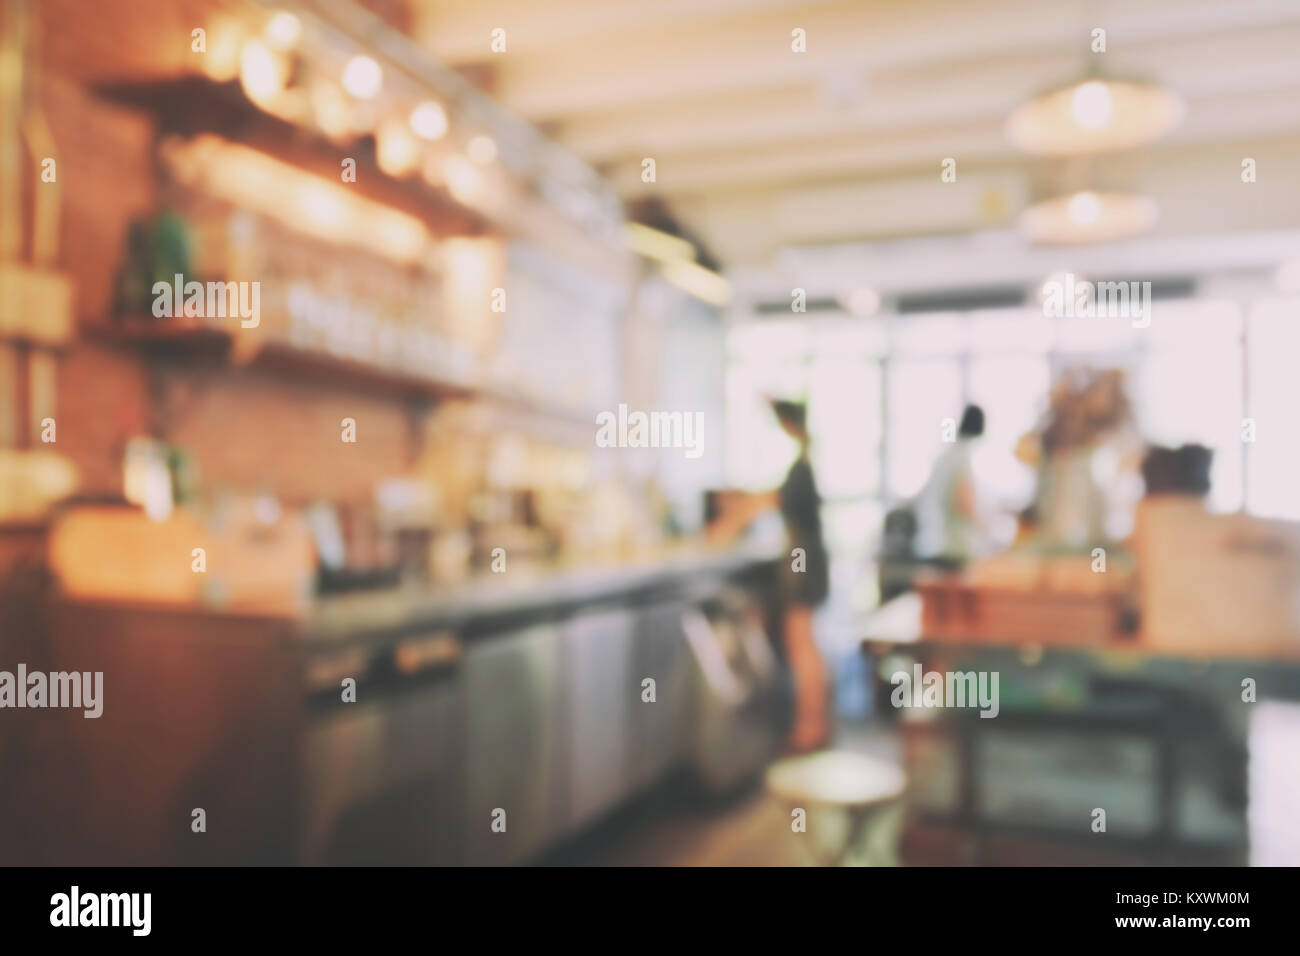 Blur Image Of Coffee Shop Interior Background With Vintage Style